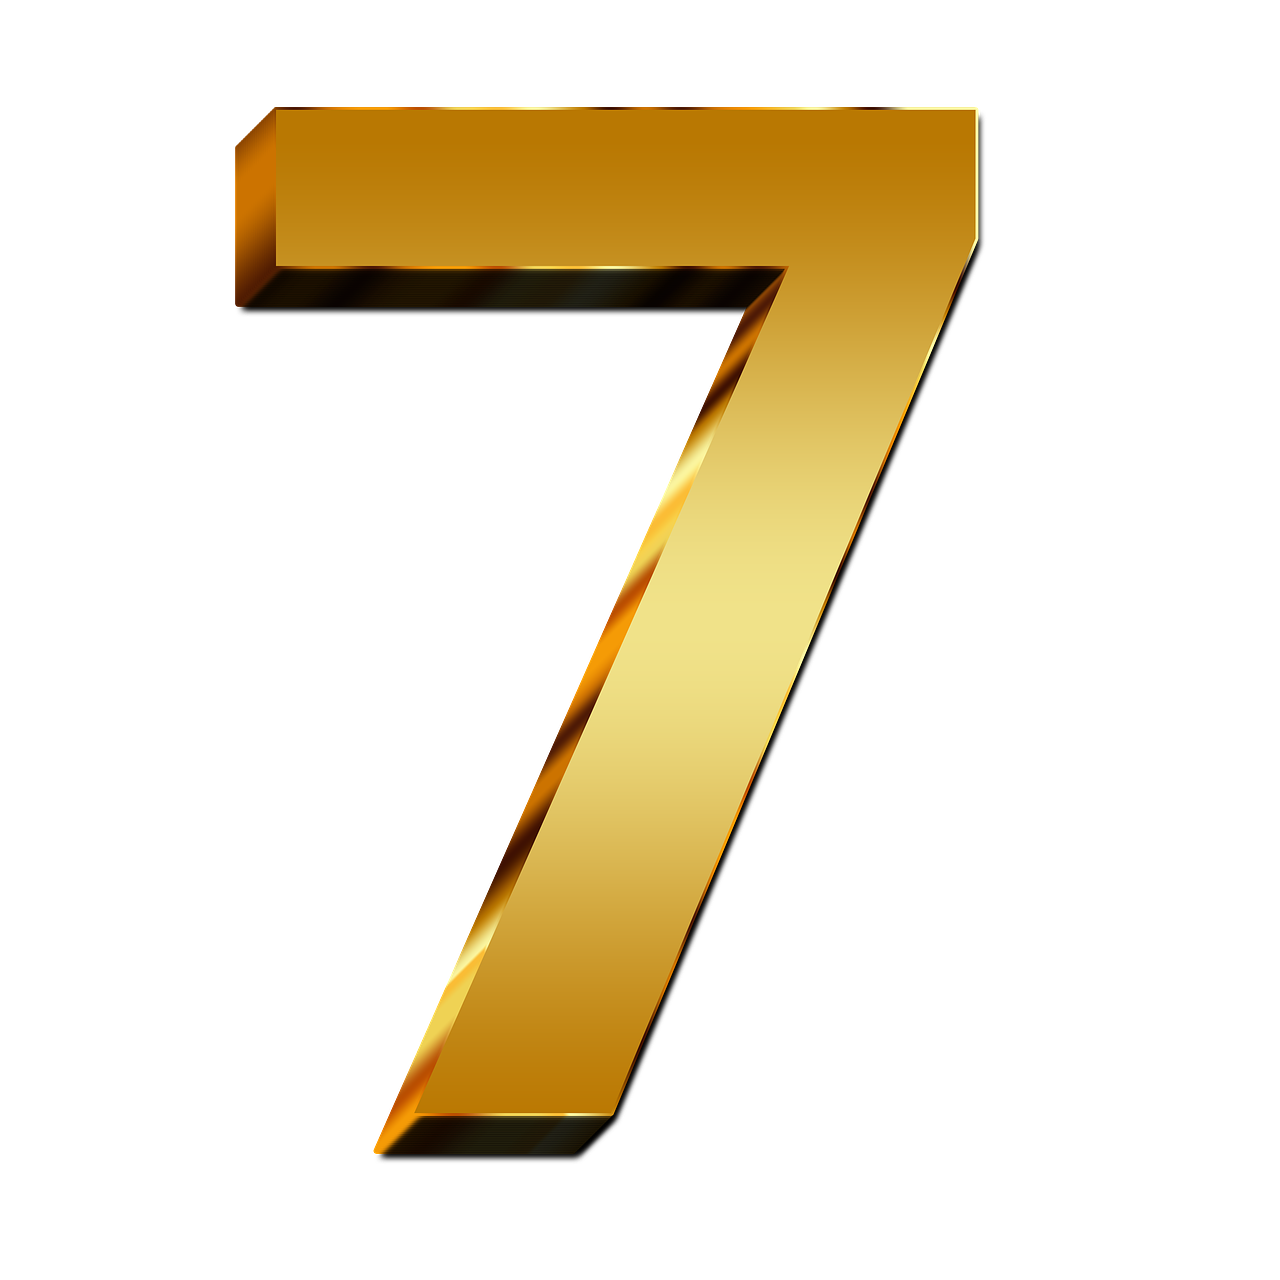 7 Number Png PNG Image